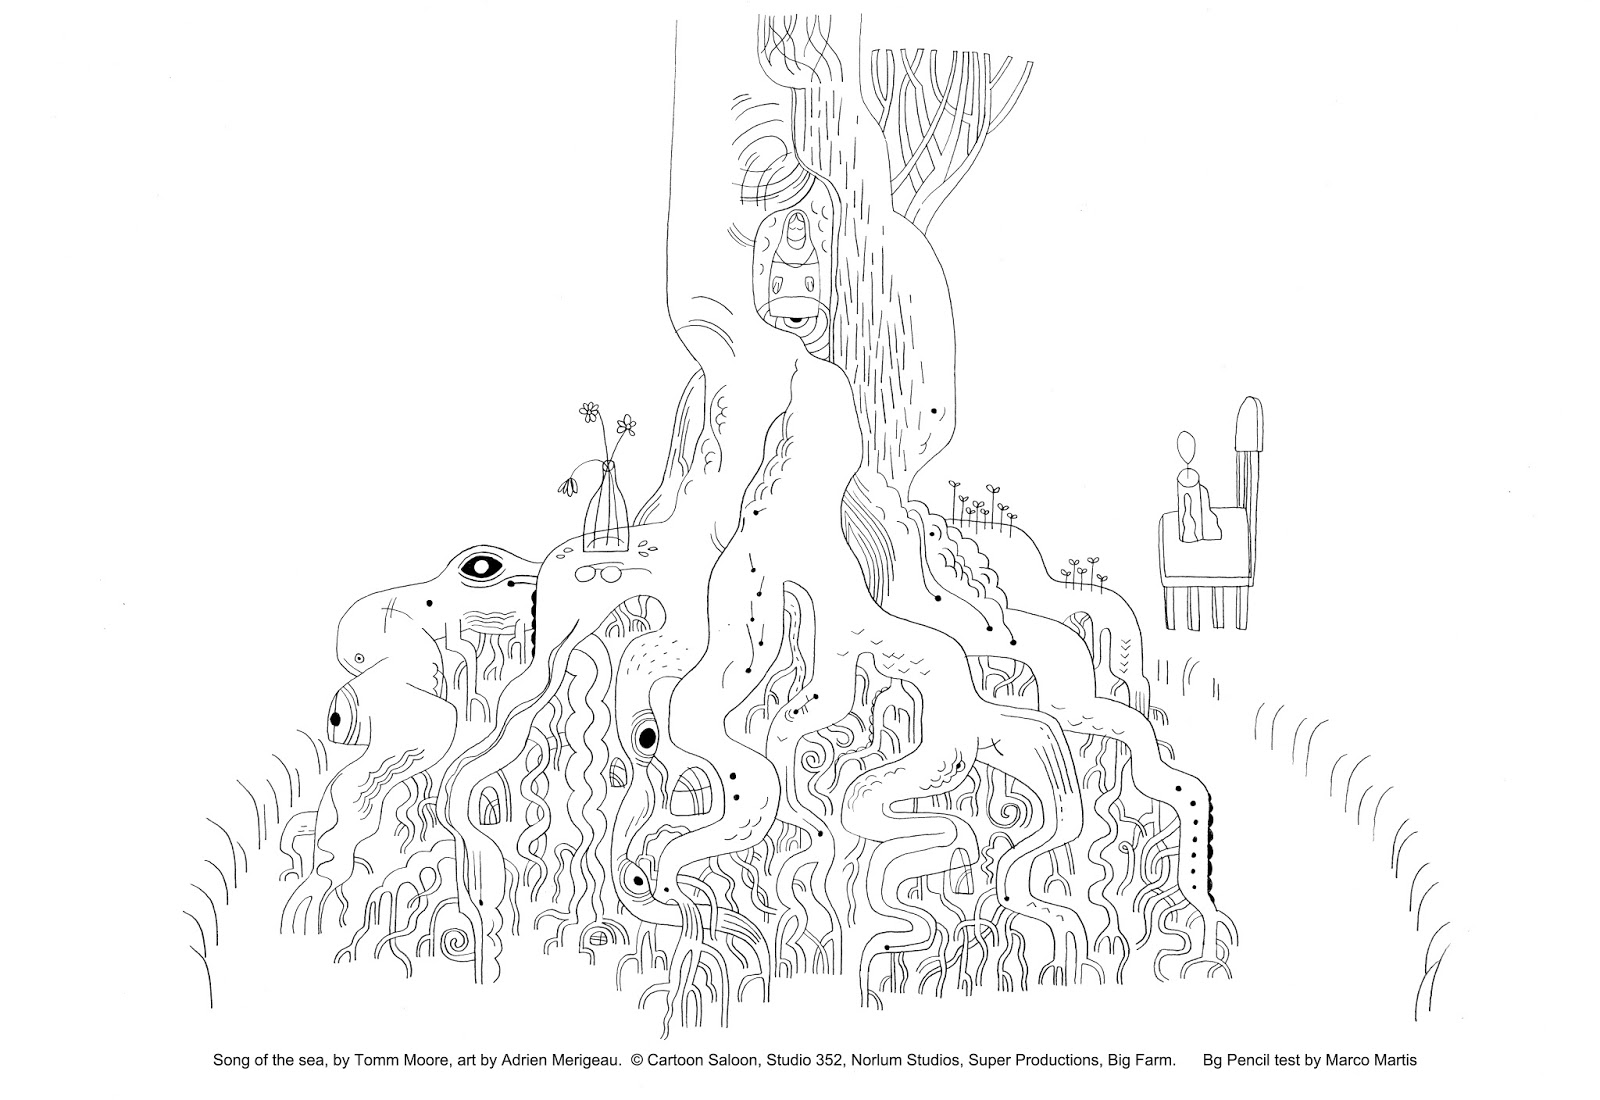 marcomart.backgrounds: Song of the sea, by Tomm Moore, art